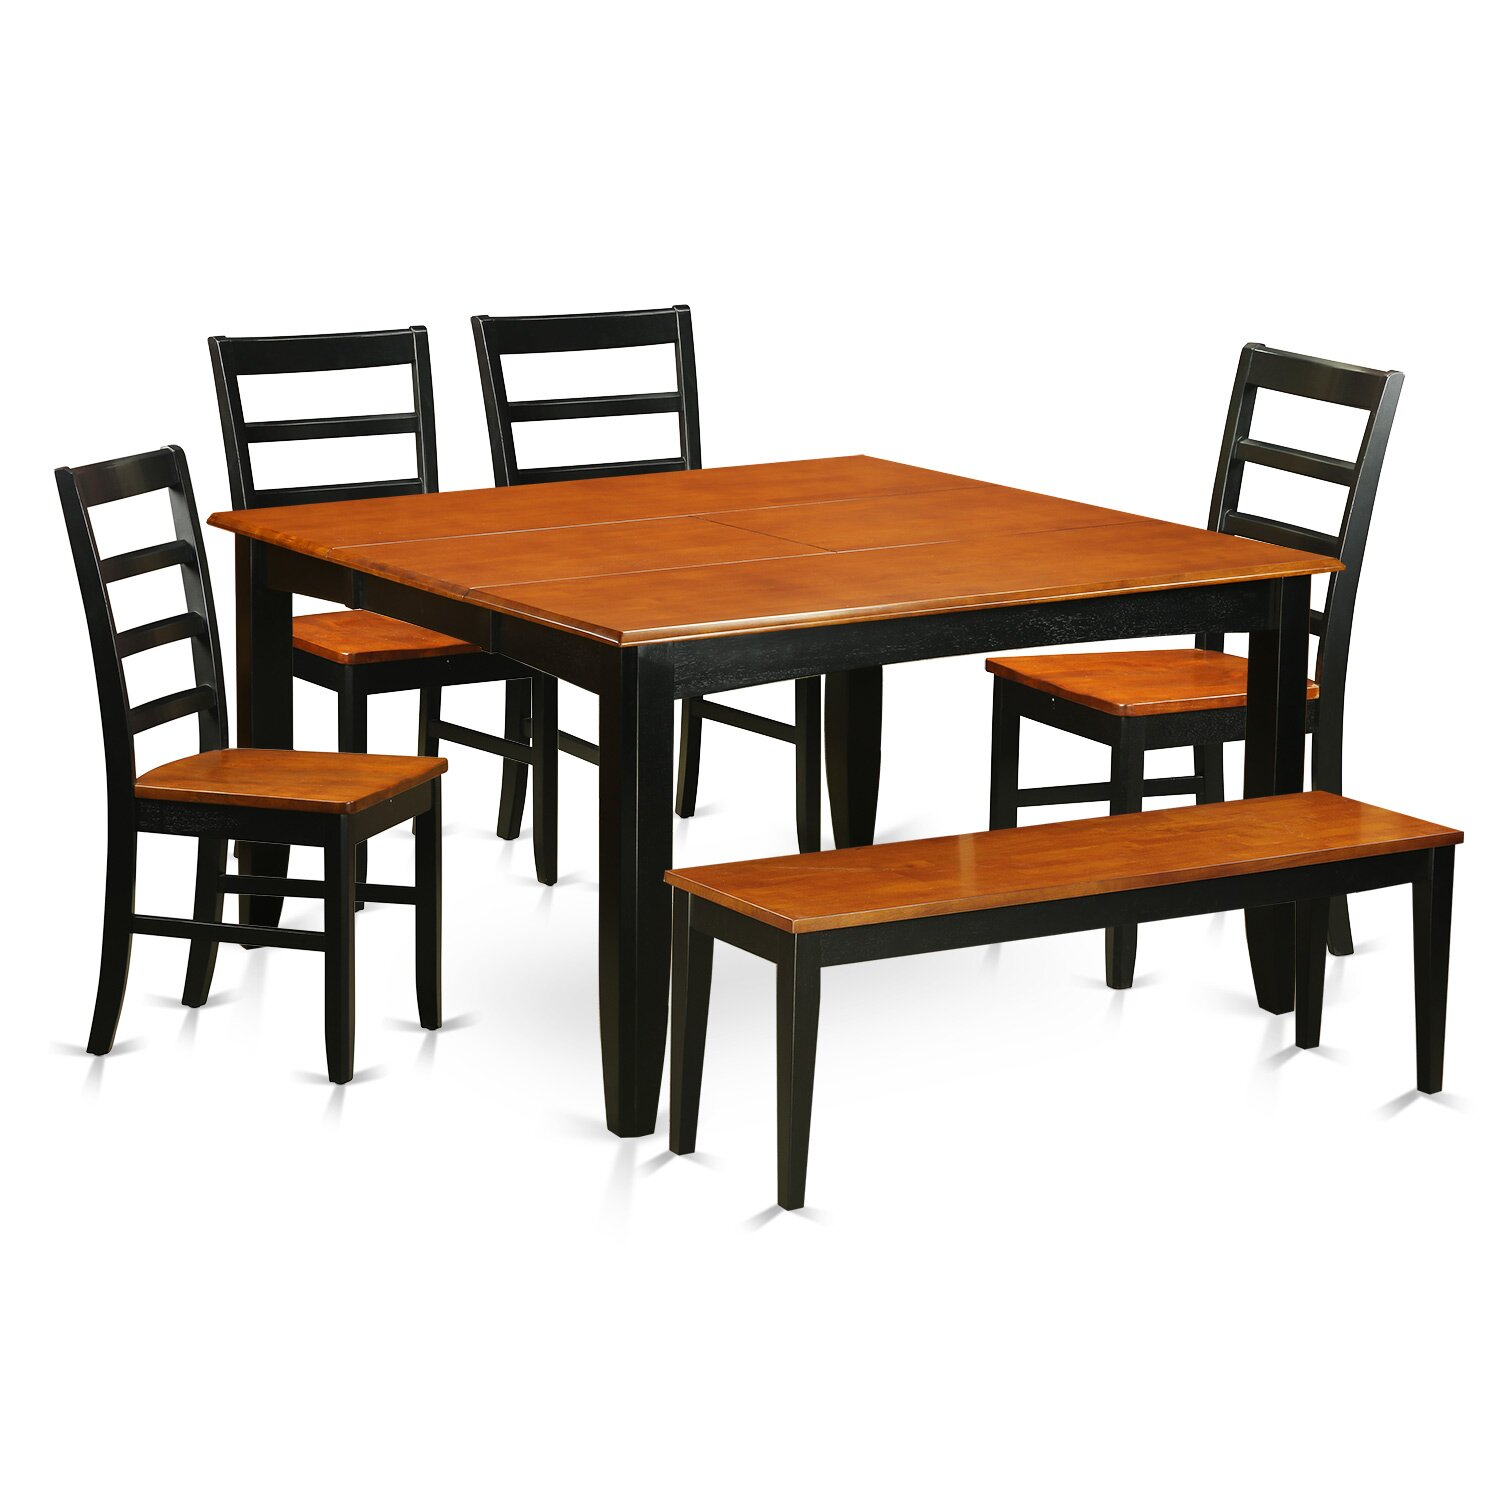 Wayfair Dining Room Chairs Curved Dining Bench Kitchen: Parfait 6 Piece Dining Set